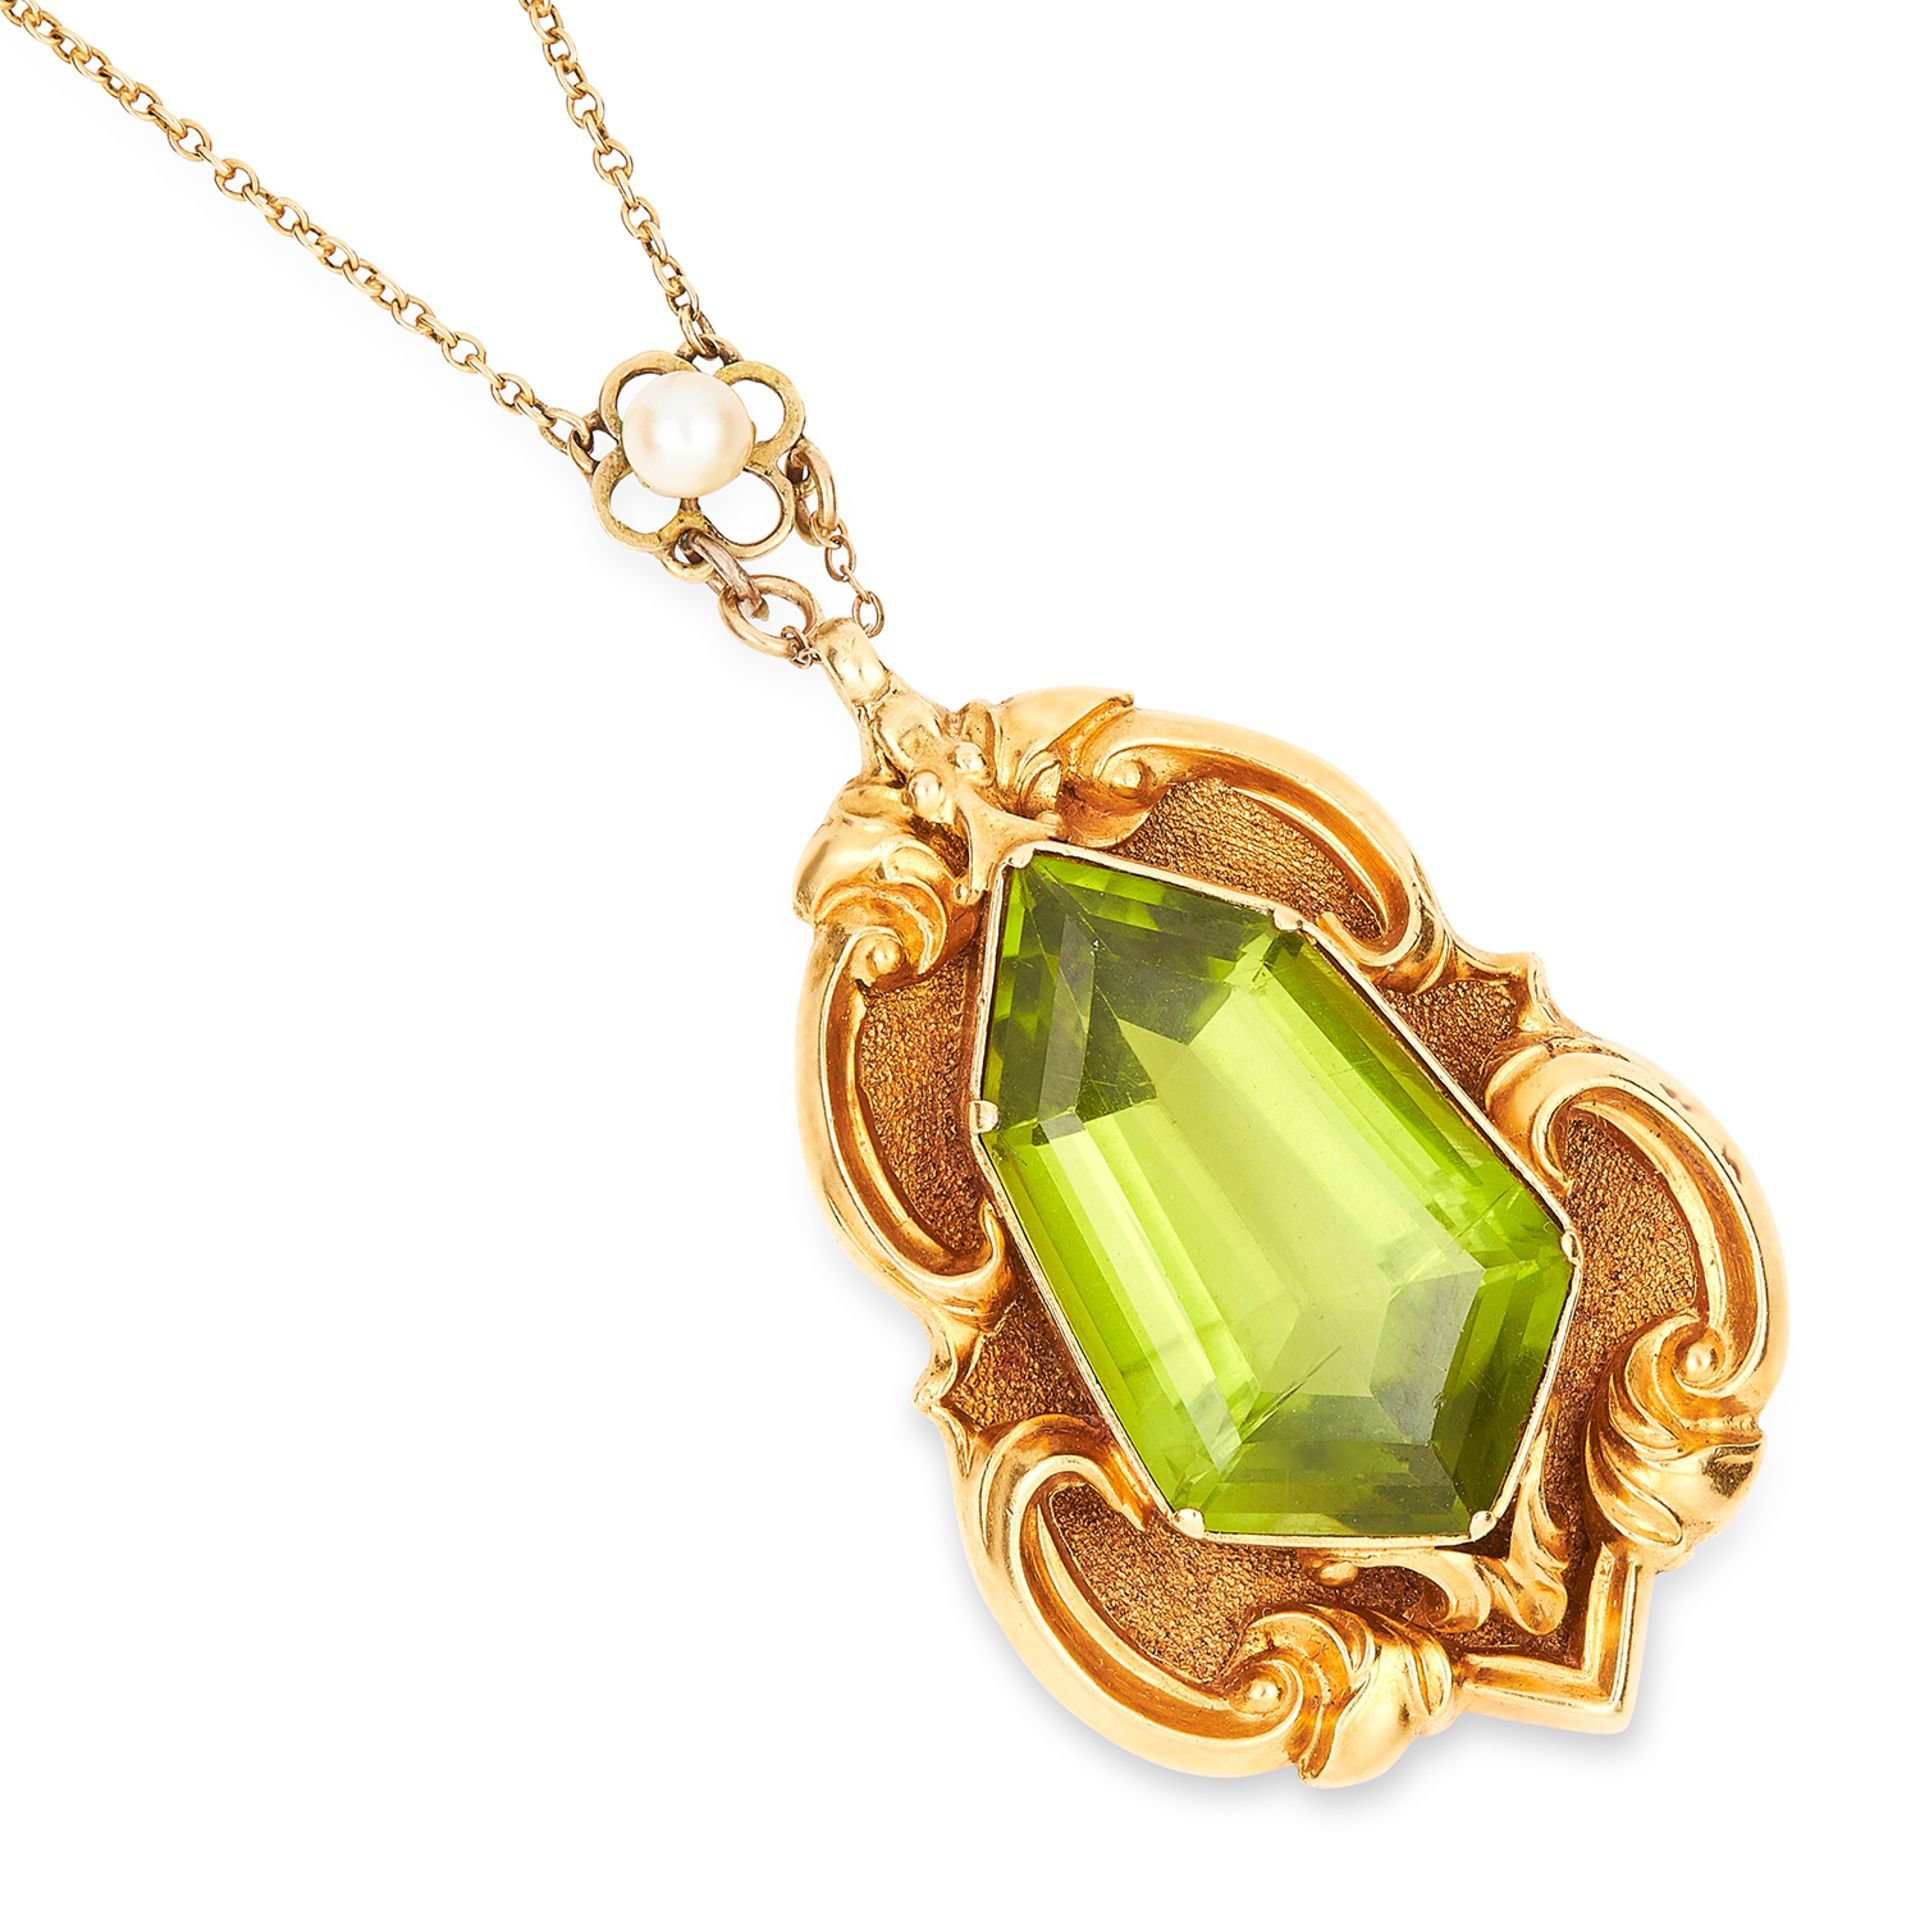 ANTIQUE PERIDOT AND PEARL PENDANT AND CHAIN set with a fancy, hexagonal step cut peridot on a